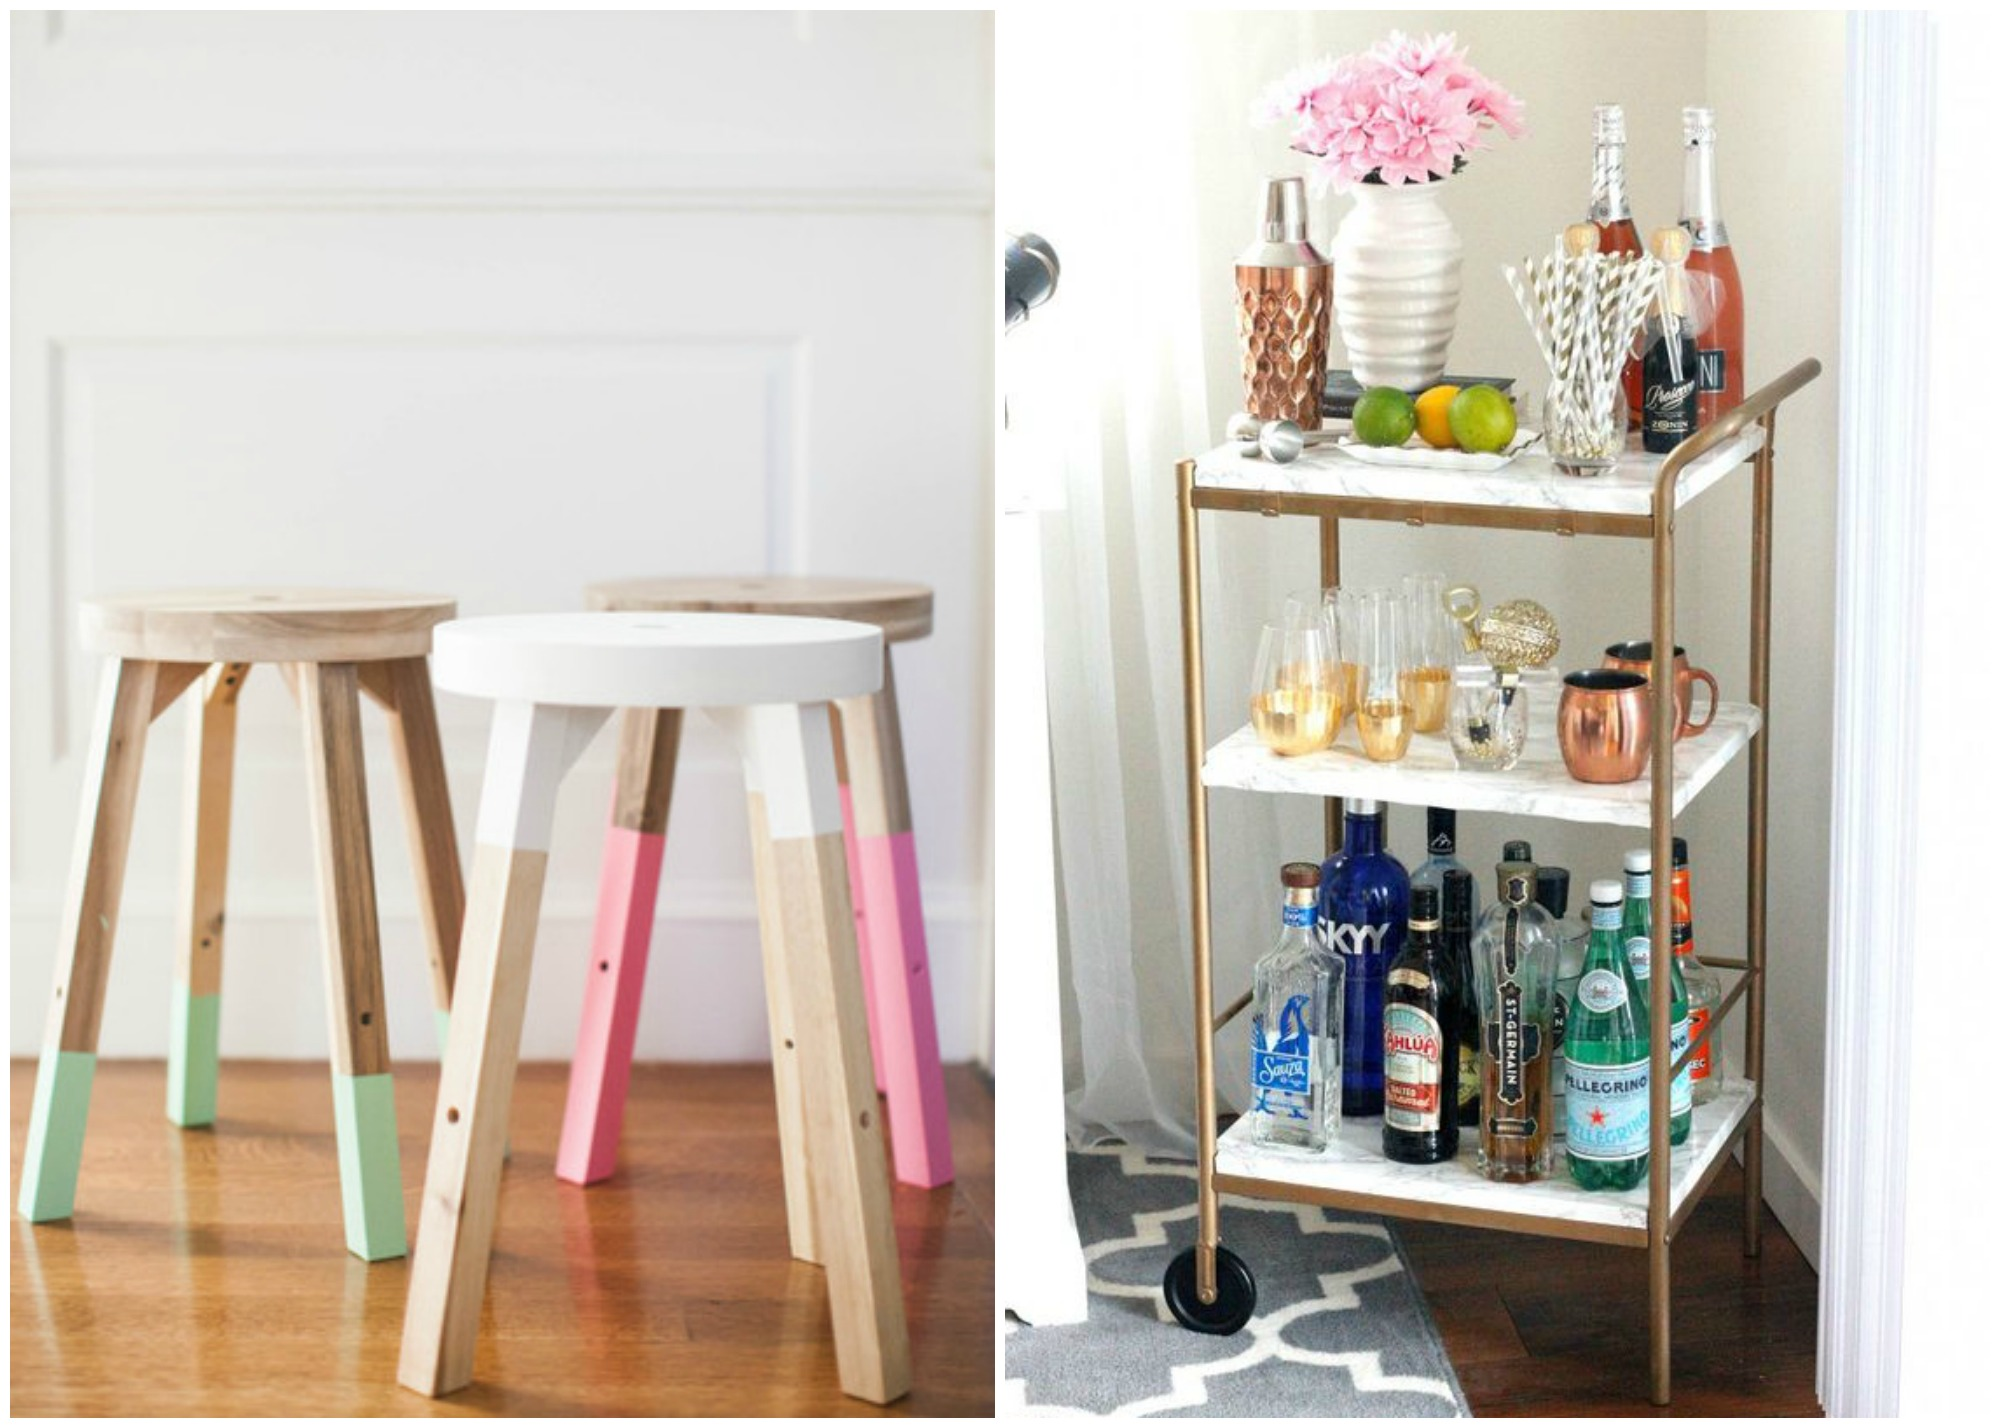 Ikea Hacks 8 Of The Best Ikea Hacks From The Experts